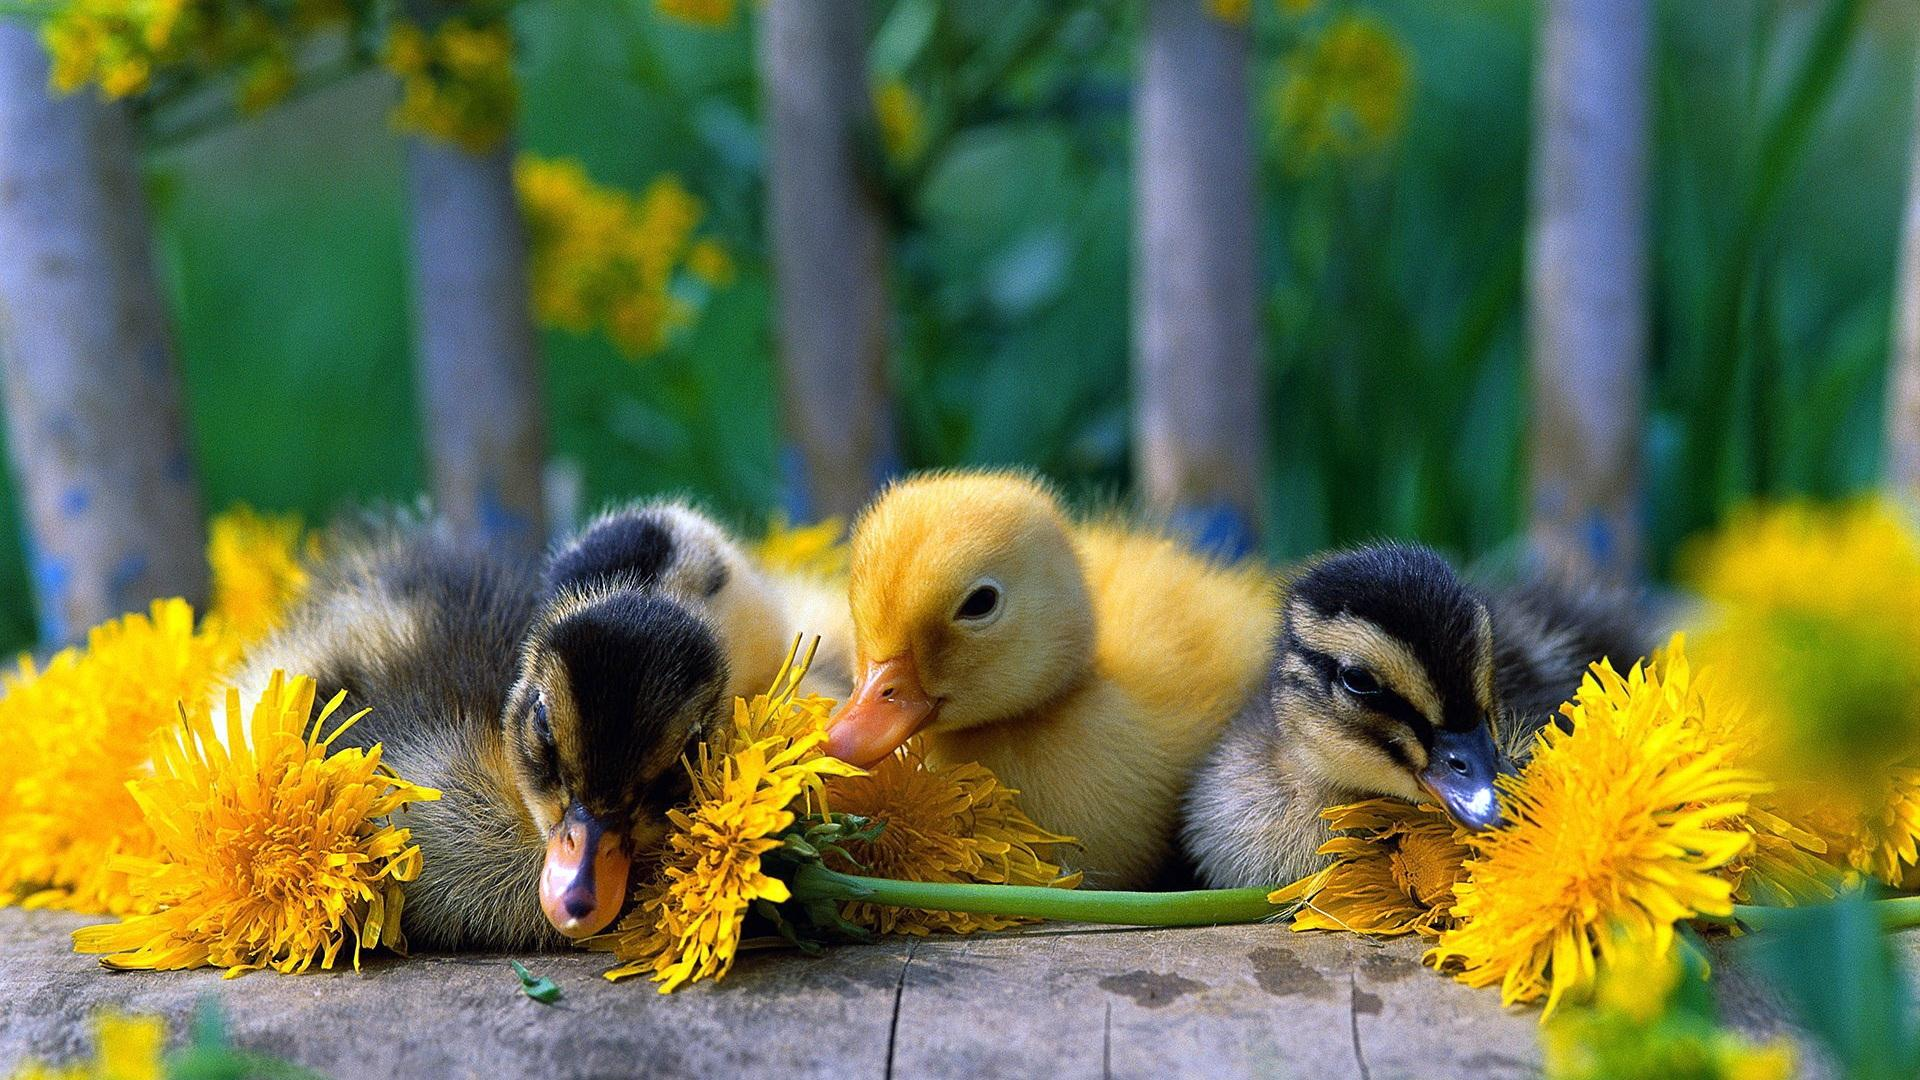 Baby Duck Wallpapers - Wallpaper Cave